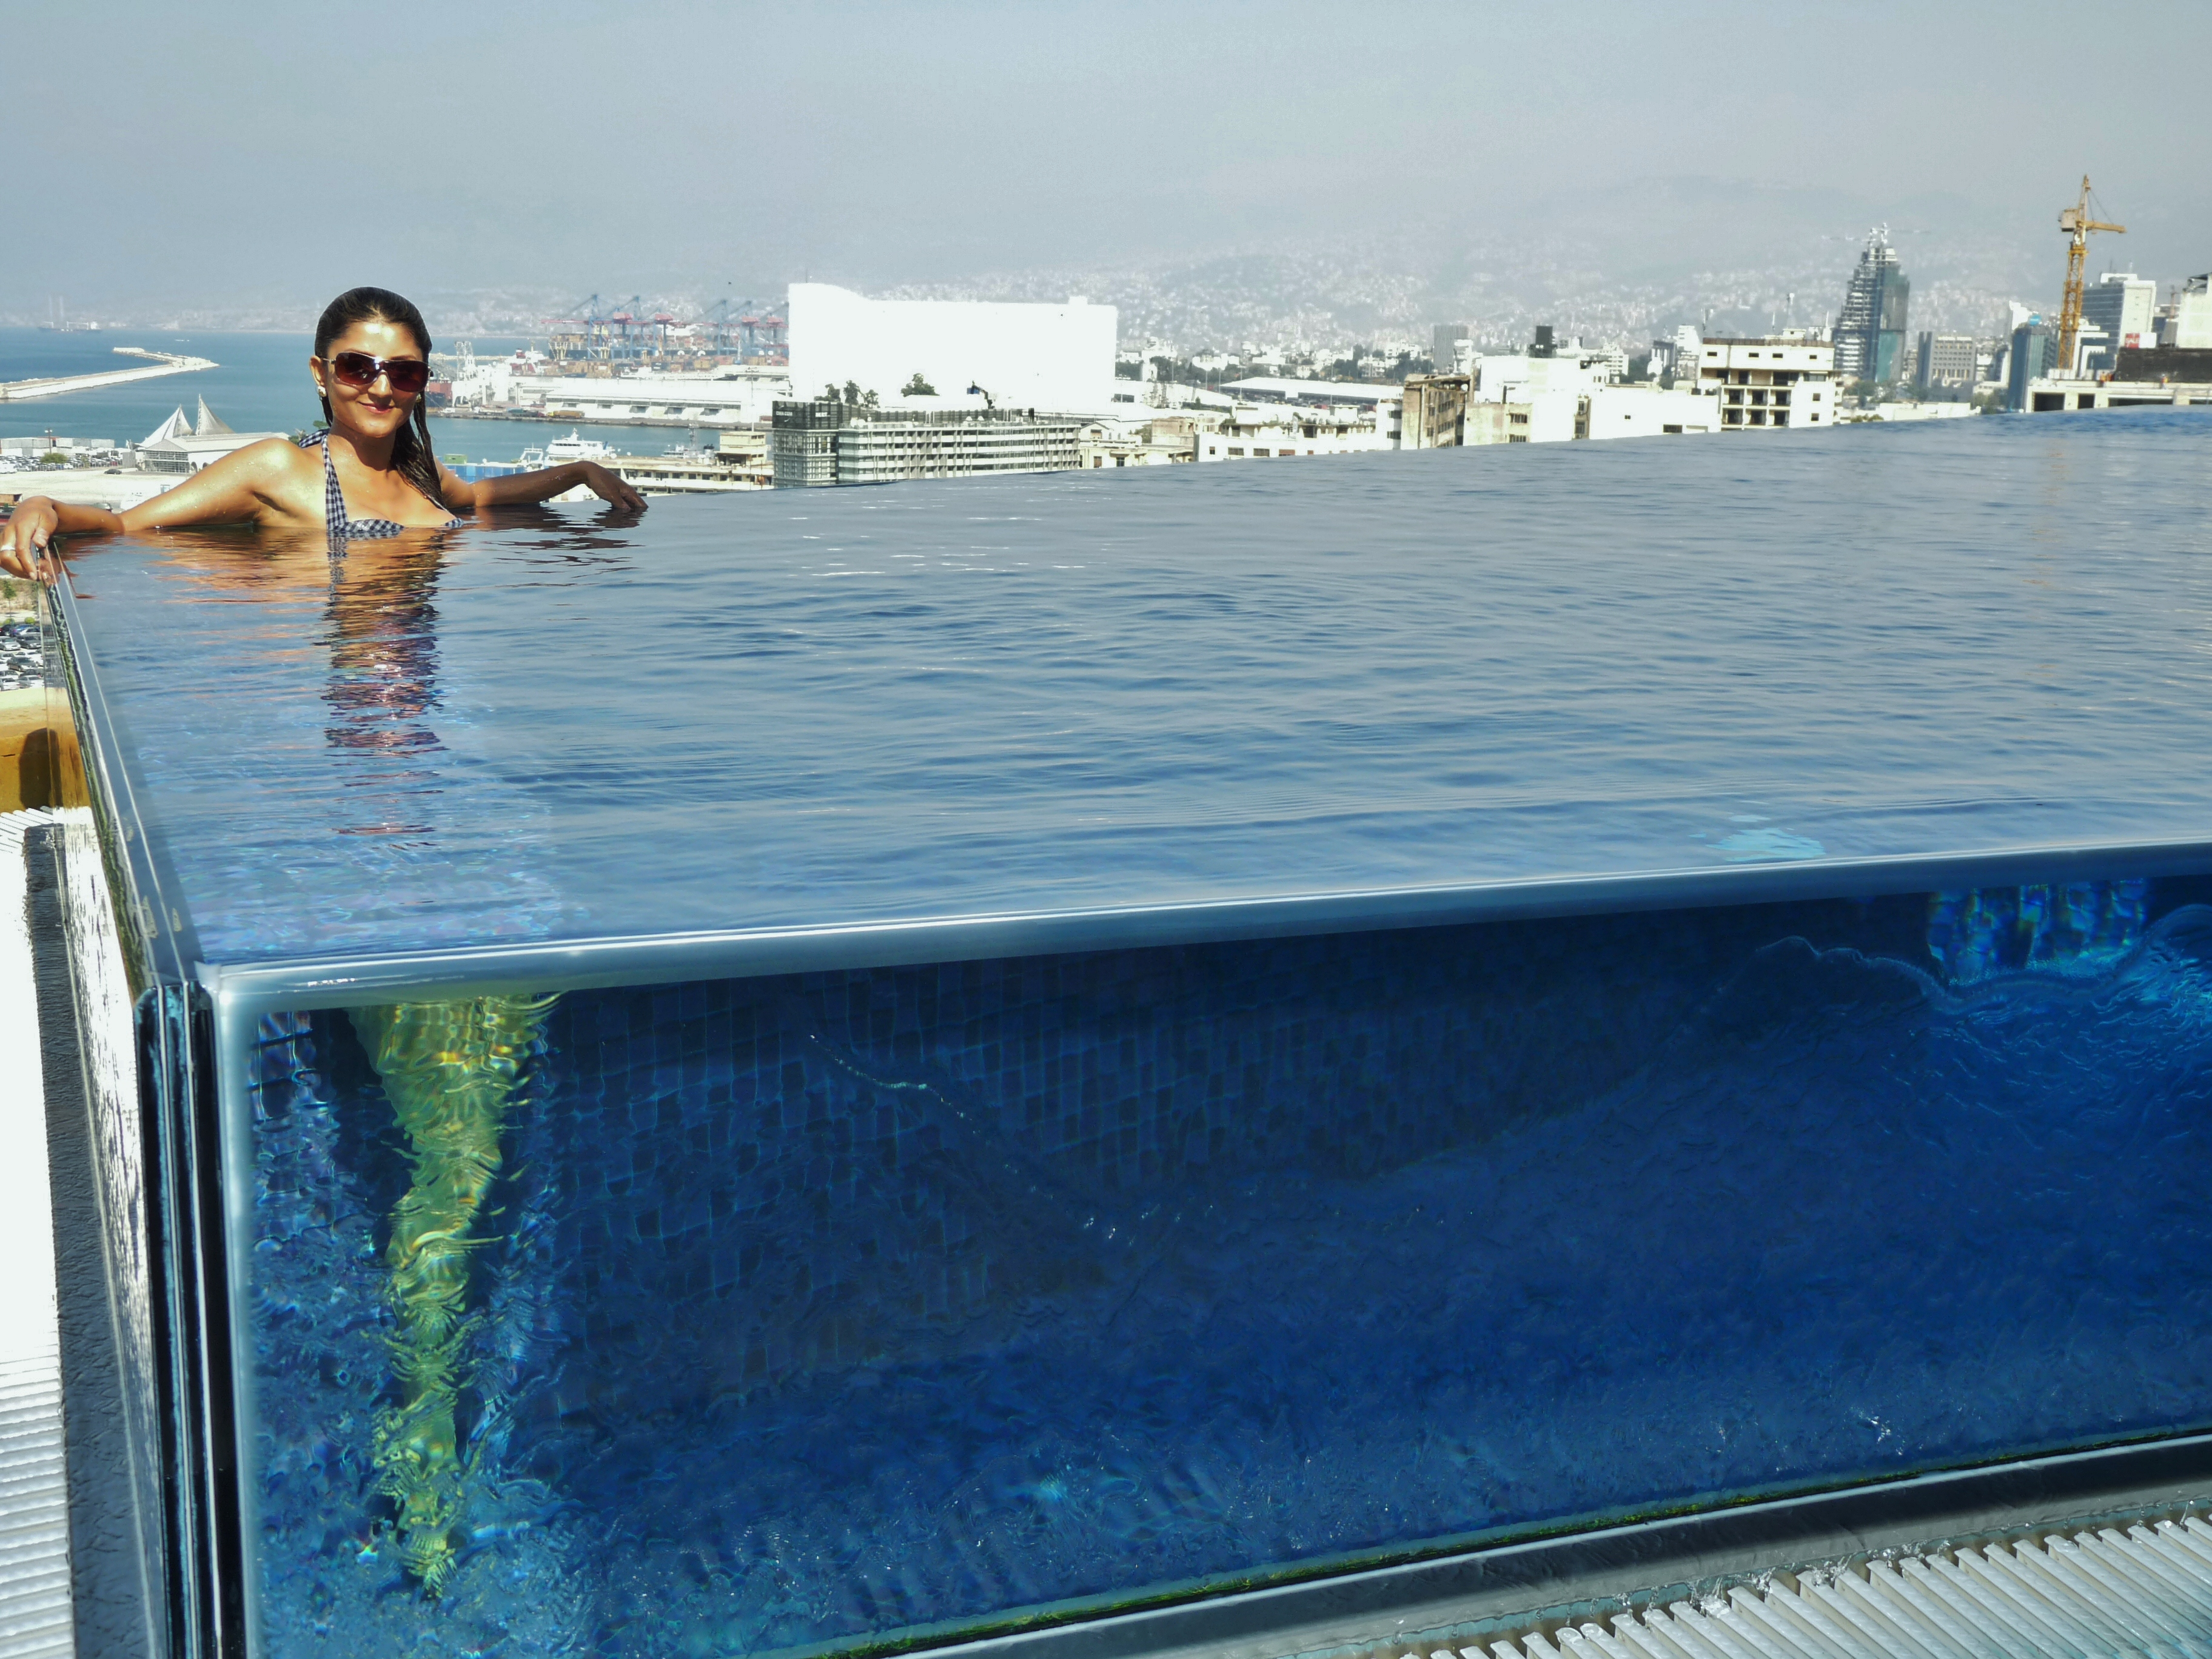 Law of refraction demonstrated perfectly by glass box for Rooftop pool design